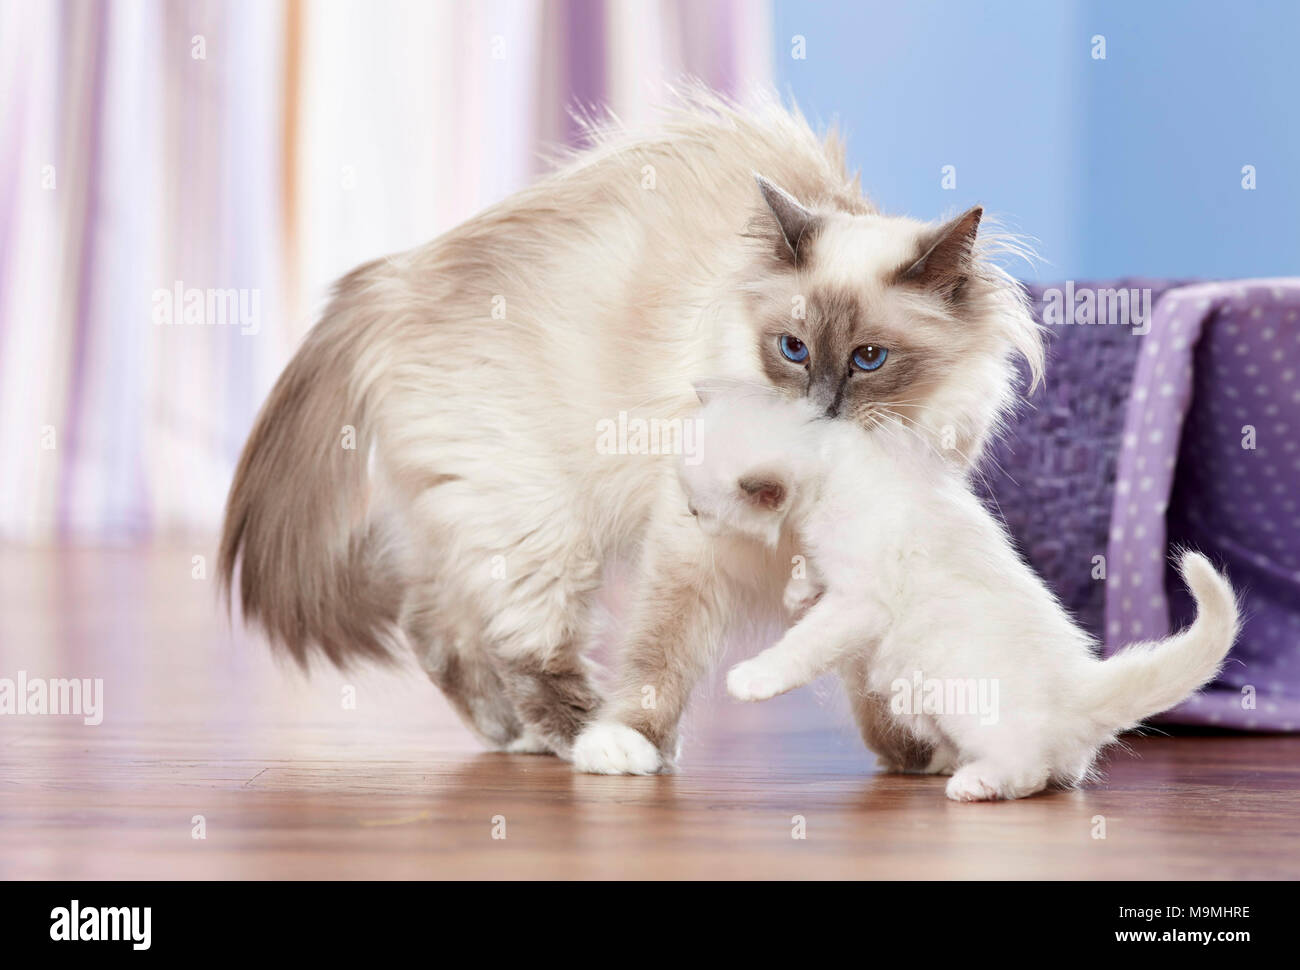 Sacred cat of Burma. Mother picking up kitten (4 weeks old). Germany - Stock Image